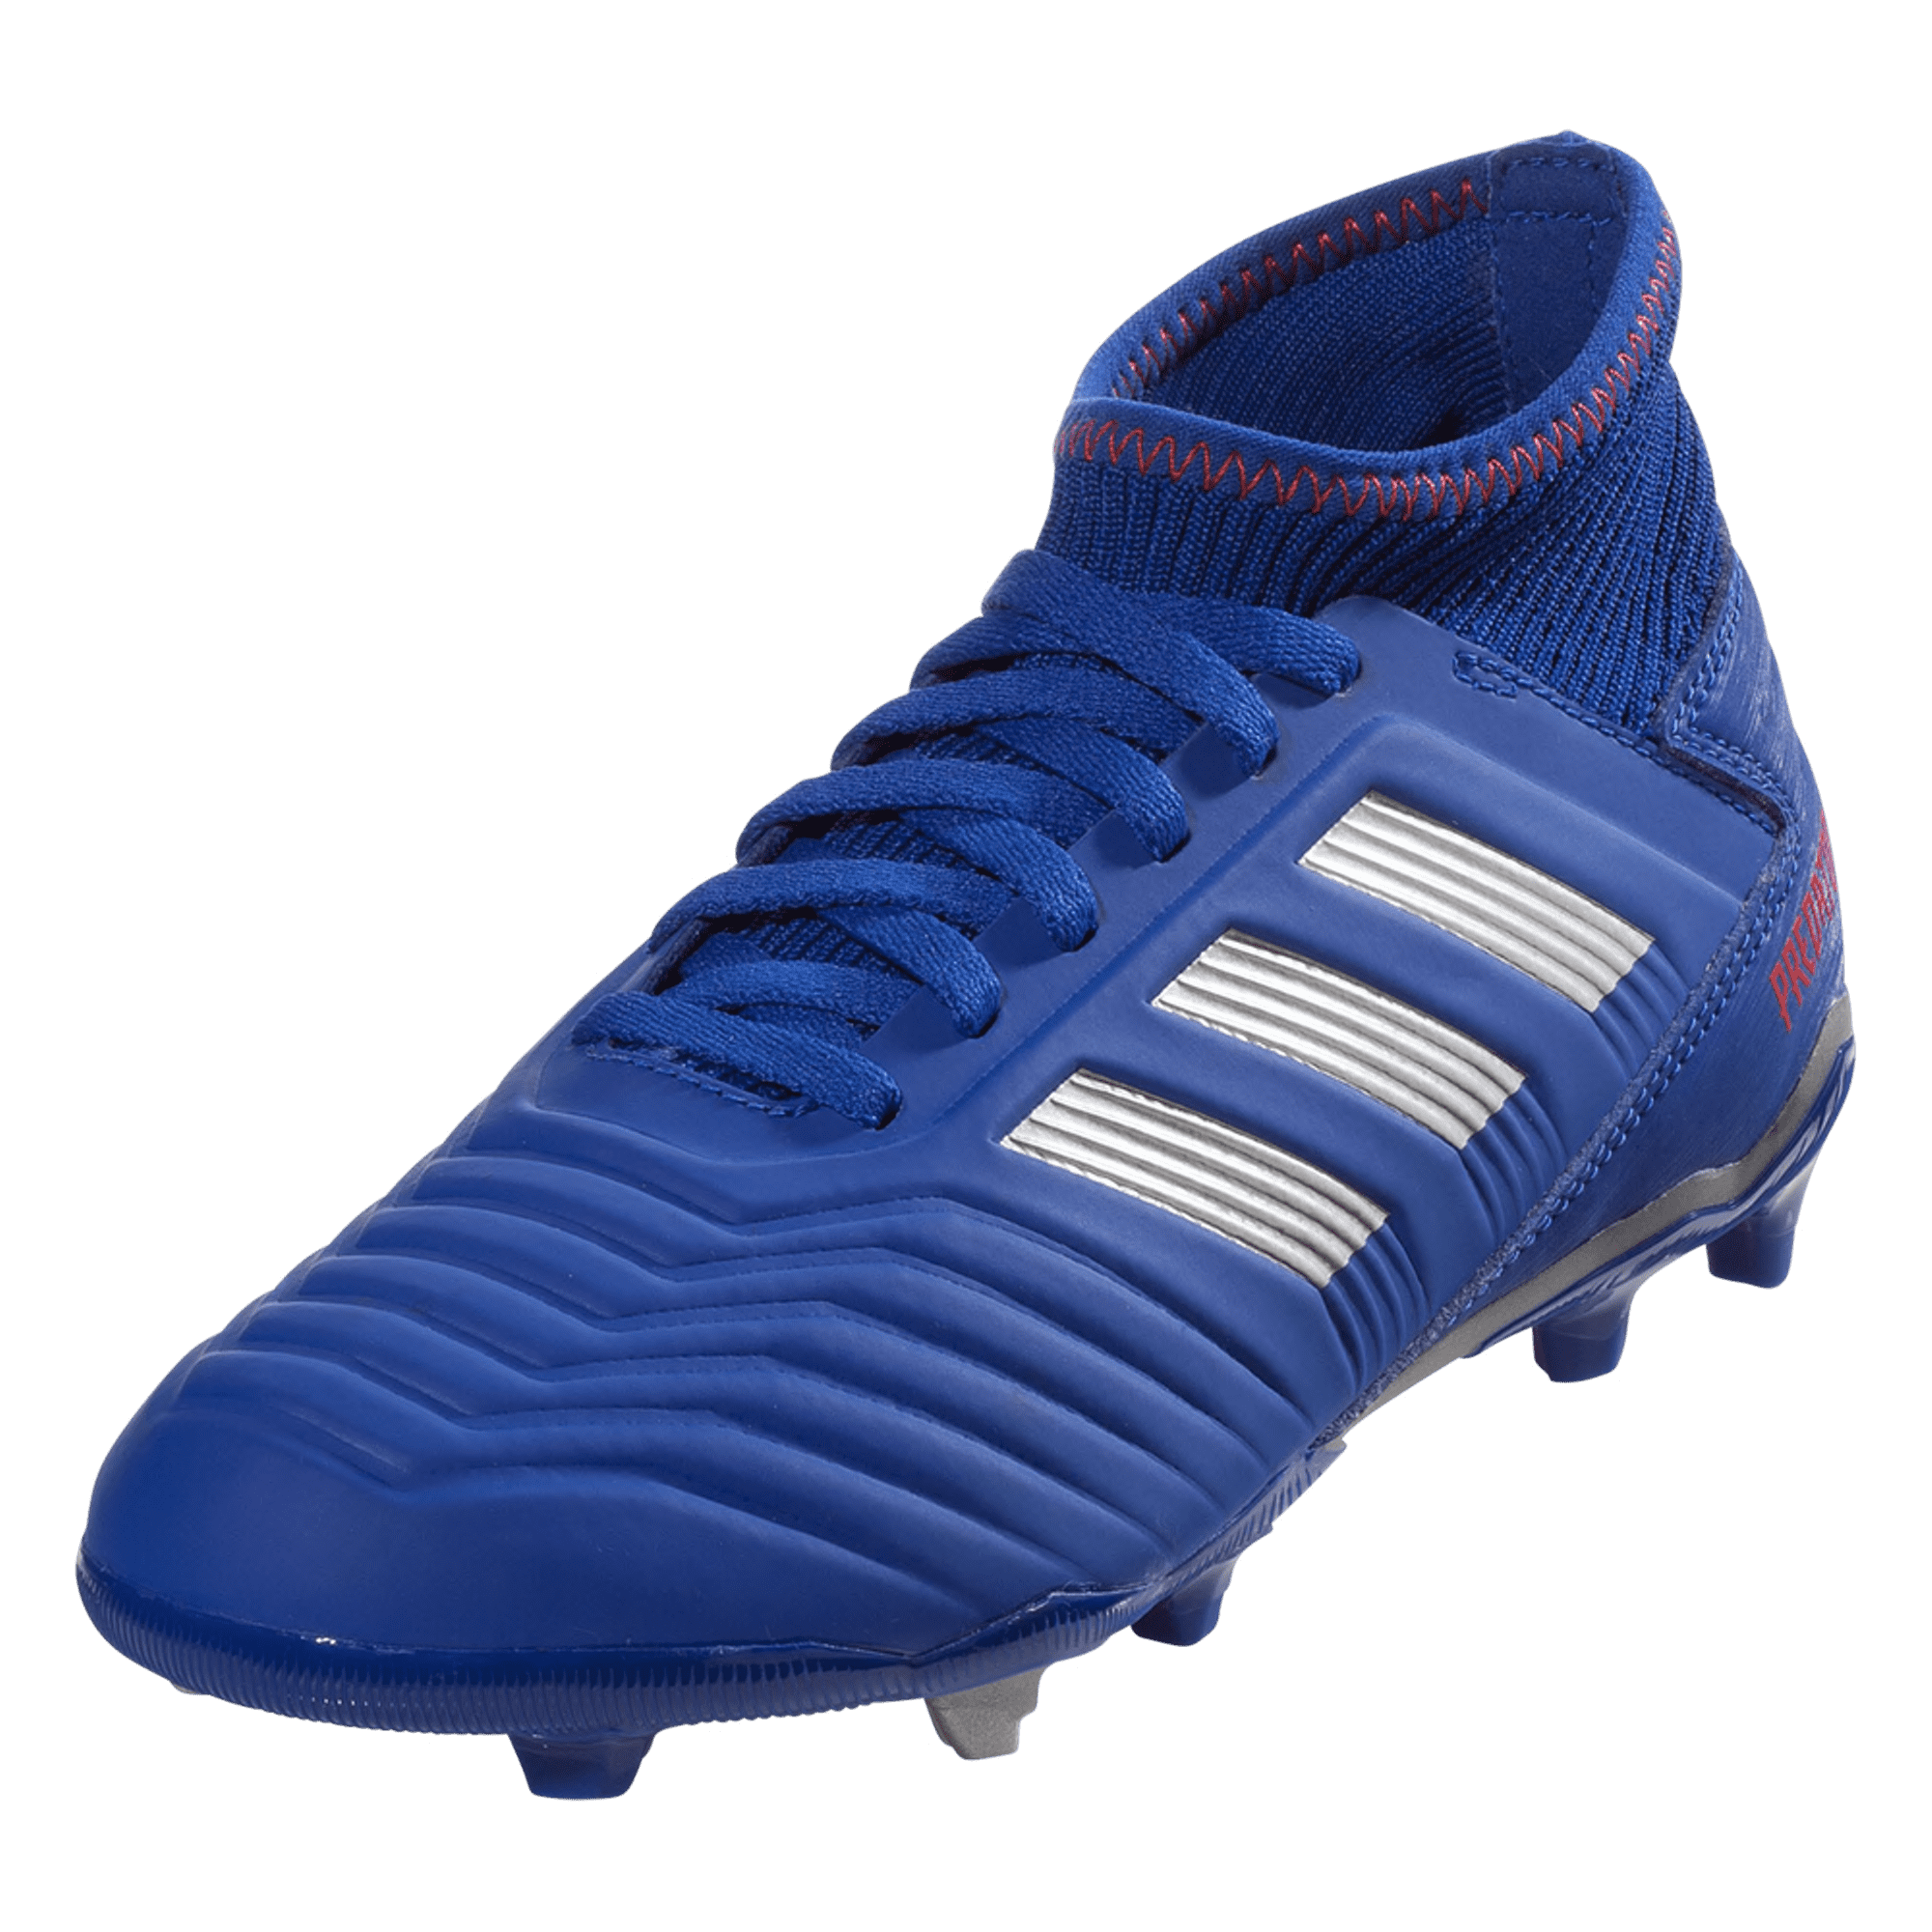 adidas Predator 19.3 FG Soccer Cleat - Blue/Silver/Red